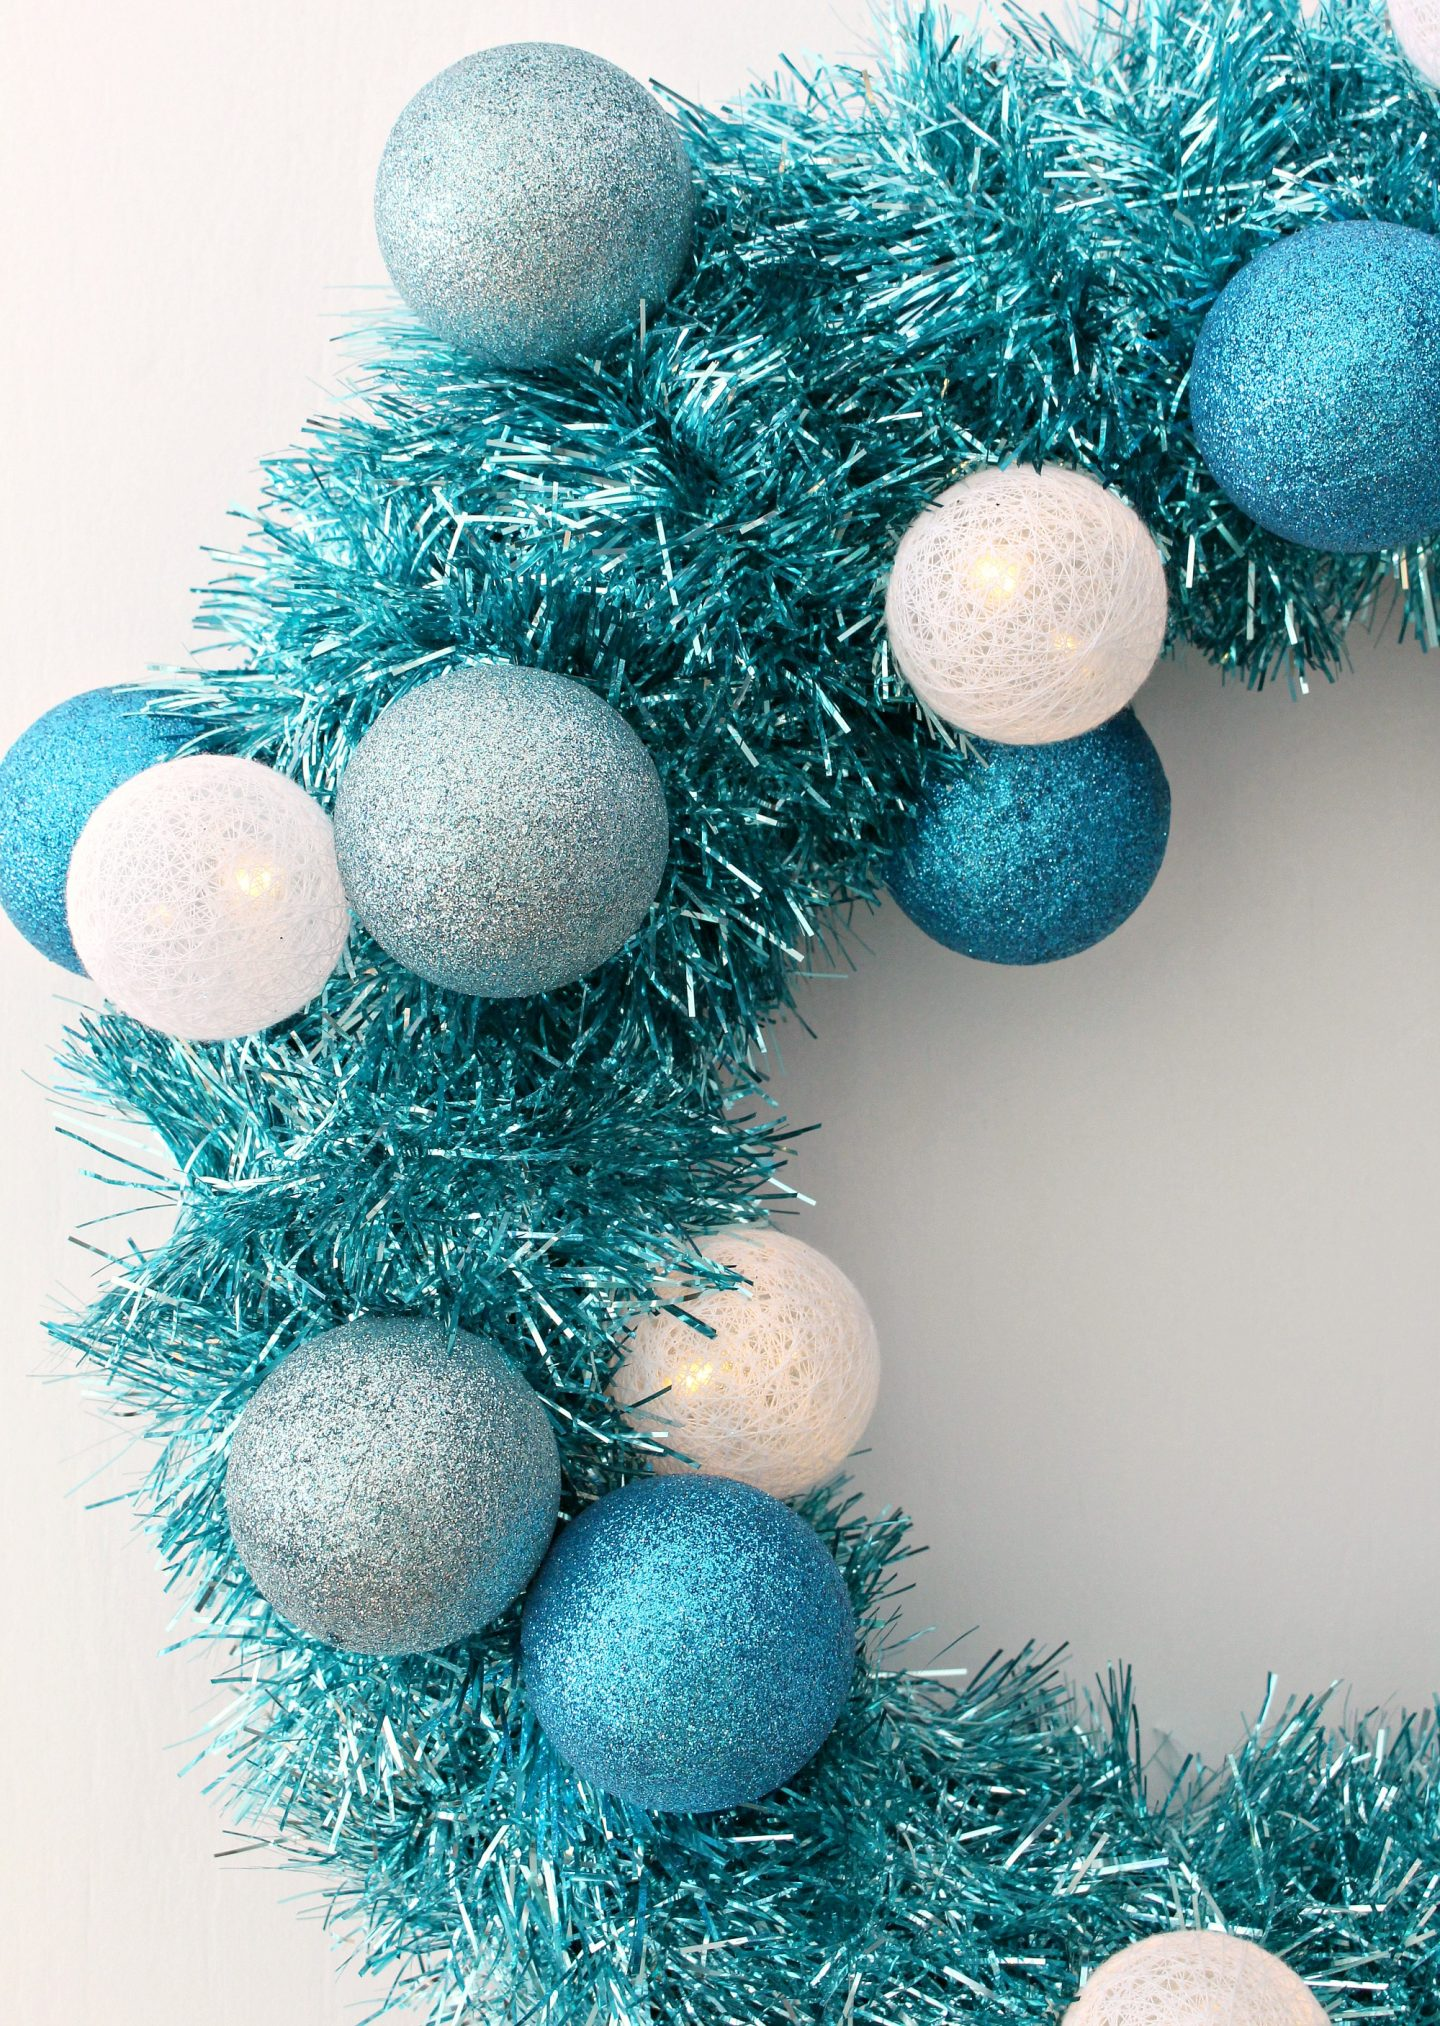 DIY Tinsel Wreath with Retro Vibes #diychristmas #tinsel #tinselwreath #retrochristmas